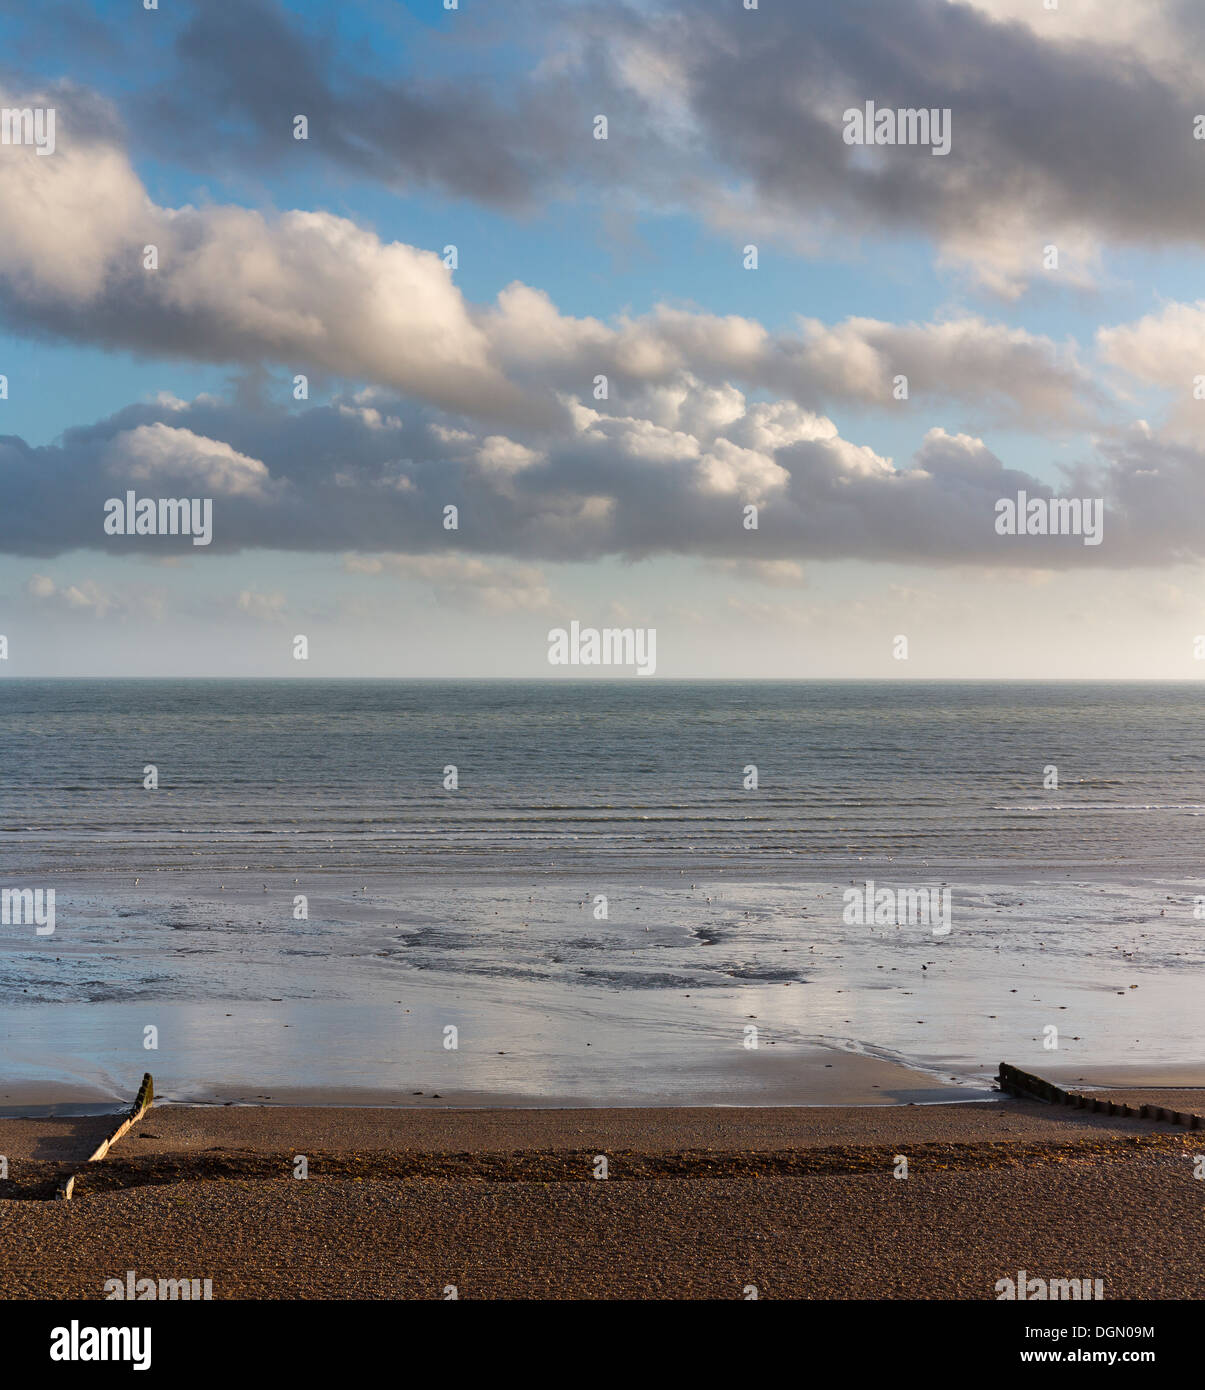 Looking out on a calm sea with late afternoon light reflecting the clouds in the calm water between two groynes Worthing England - Stock Image